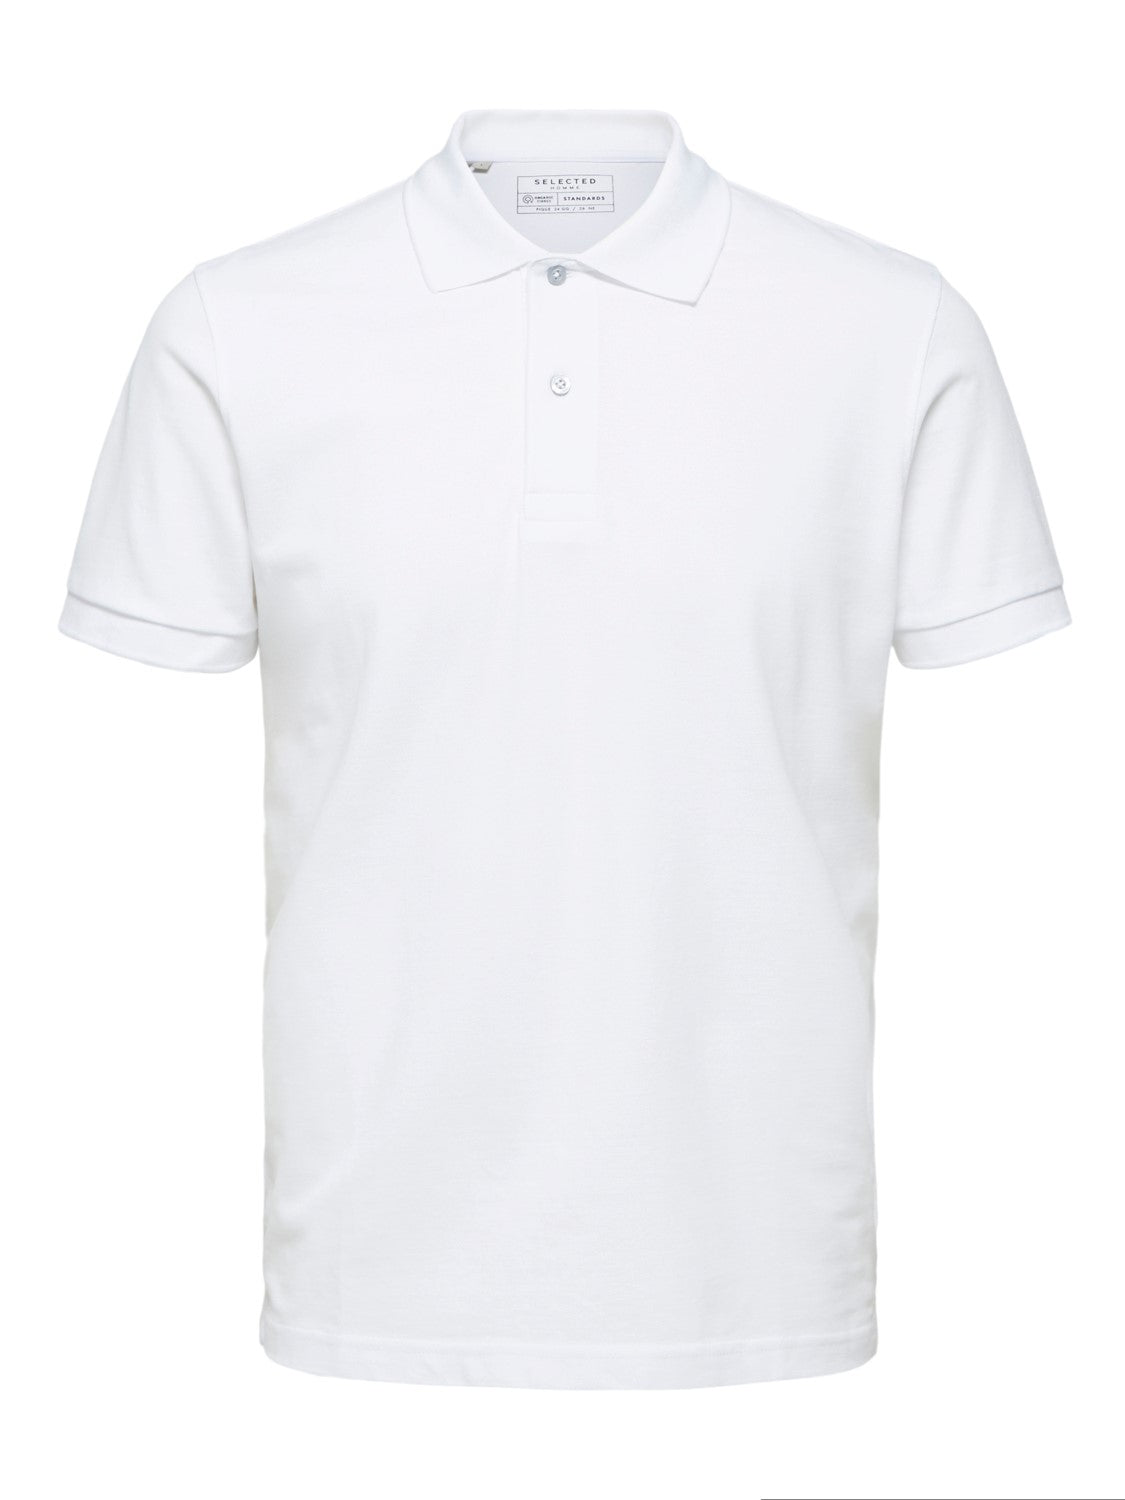 Selectedhomme neo polo bright white